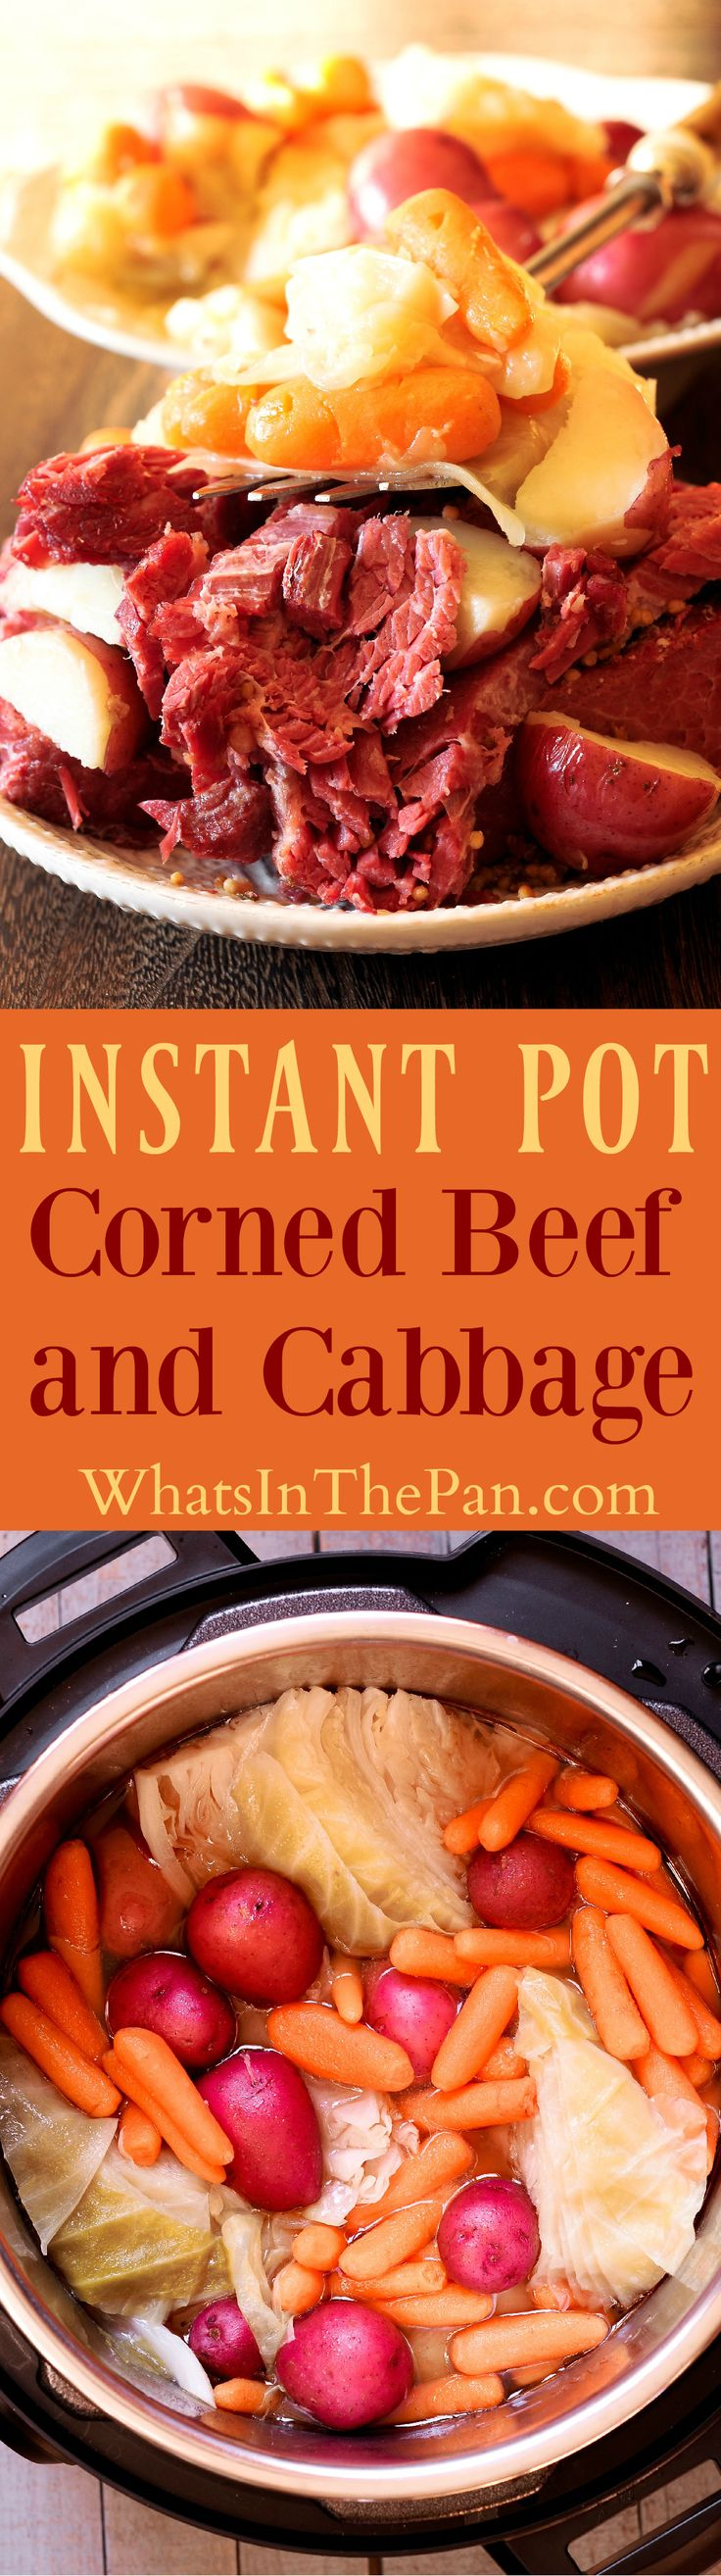 Using Instant Pot as a Pressure Cooker for Corned Beef and Cabbage (as well as potatoes and carrots) will become your go to method to cook Corned Beef Brisket for St. Patrick's Day. Detailed instructions on how to use Instant Pot are included. Irish food #instantpot